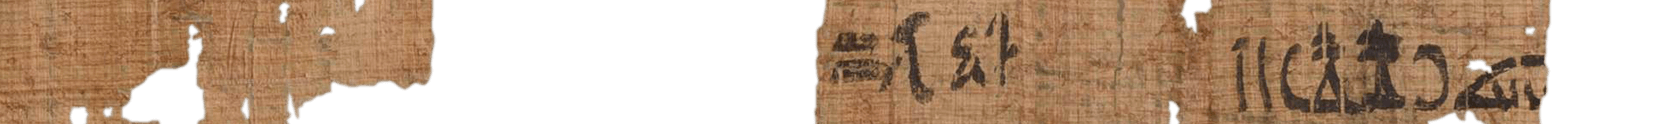 the Turin king list 4.24 (photo of the hieratic text)